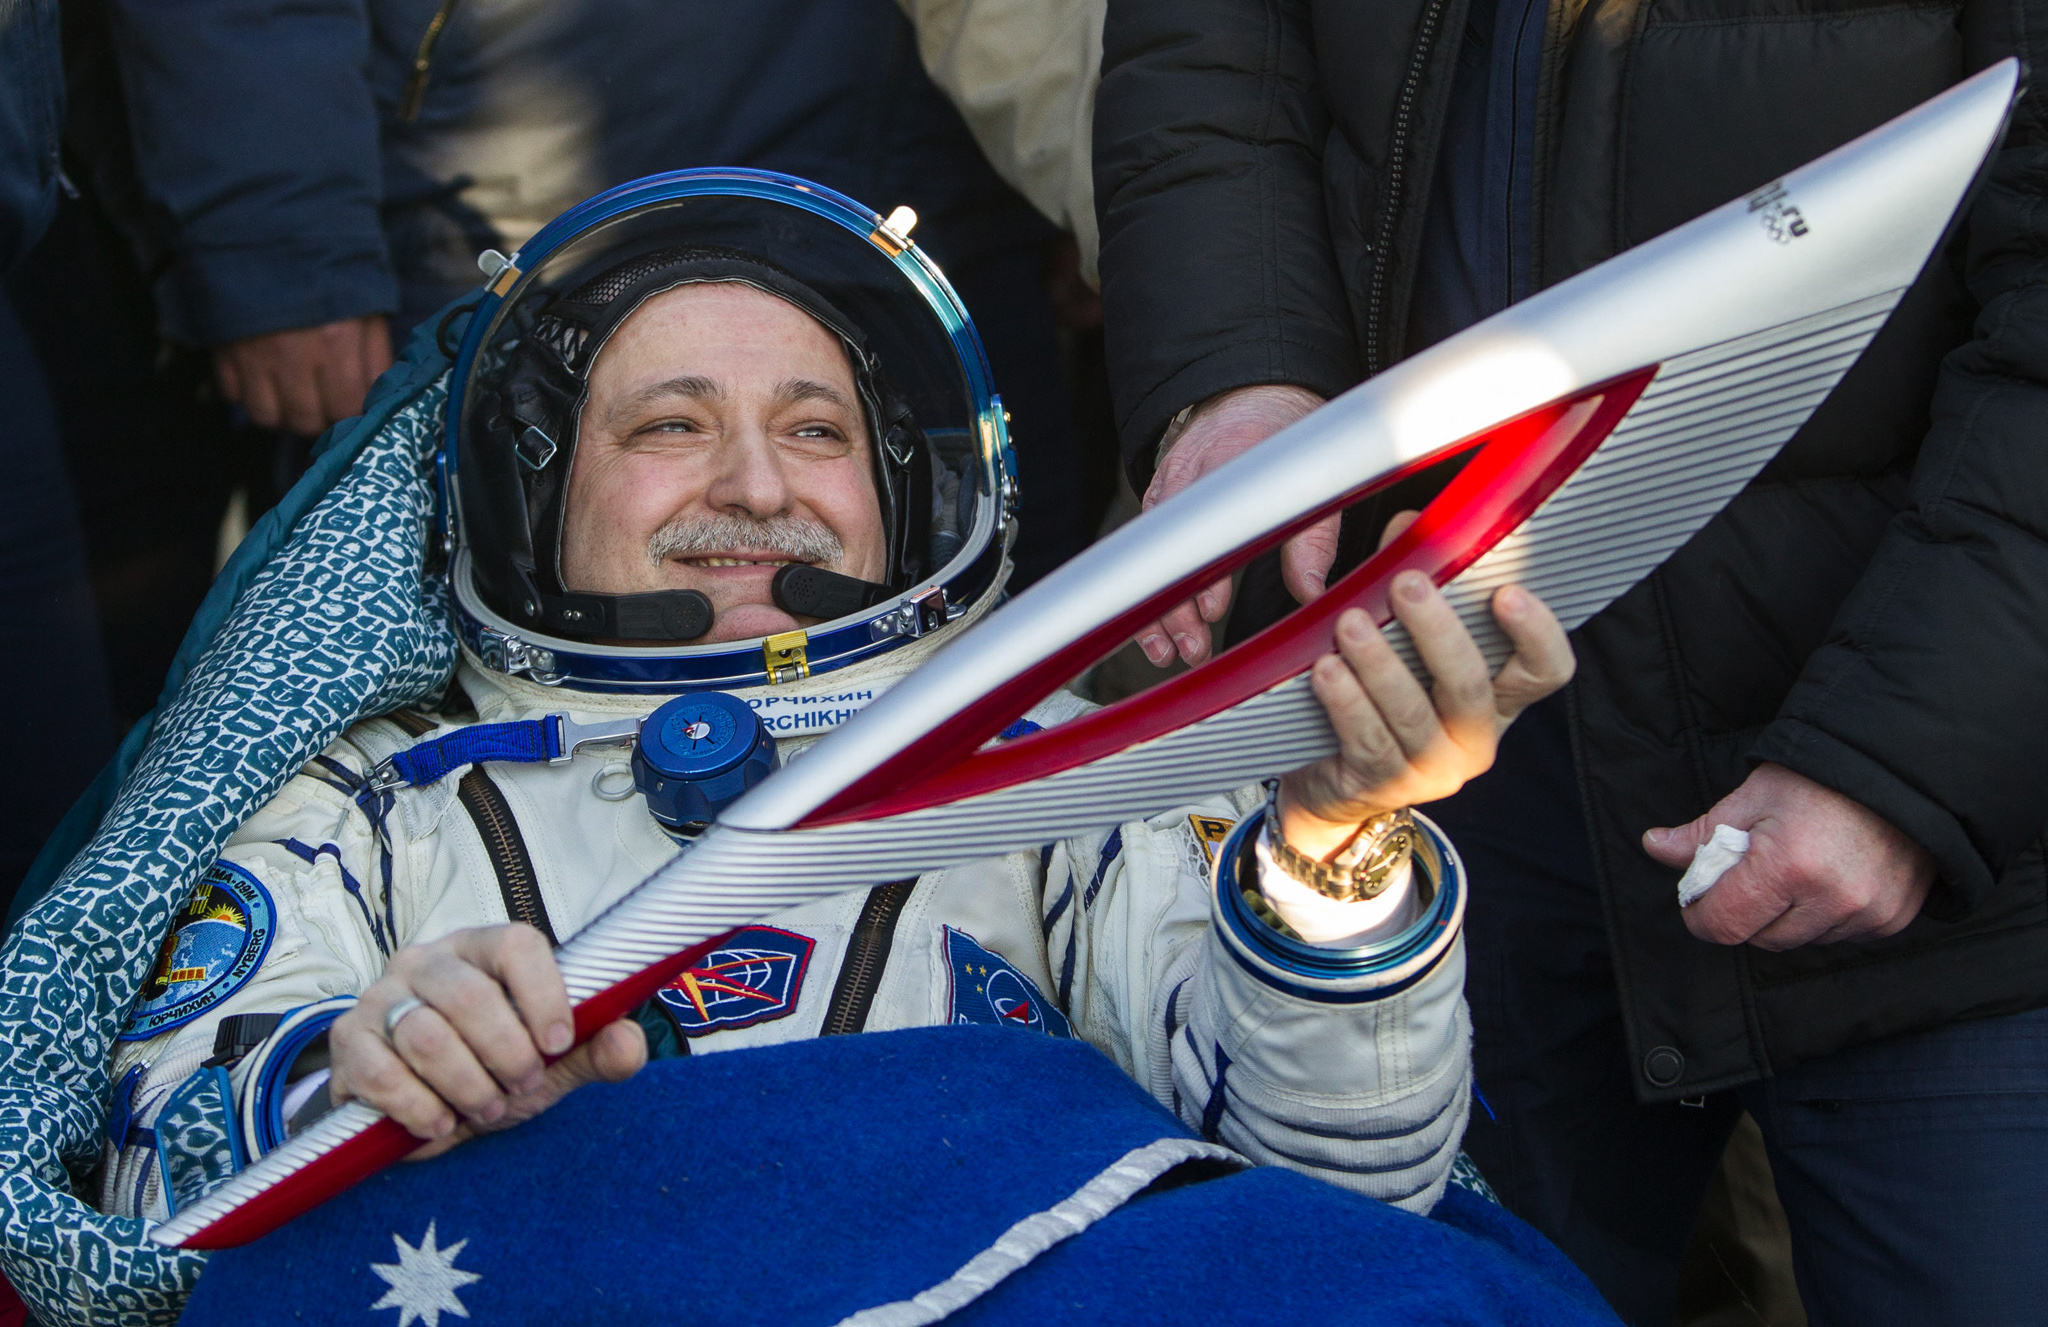 The International Space Station (ISS) crew member Russian cosmonaut Fyodor Yurchikhin holds the torch of the 2014 Sochi Winter Olympic Games after landing near the town of Zhezkazgan in central Kazakhstan. Three astronauts returned to Earth, after 66 days aboard the International Space Station, bringing the Olympic torch back after a historic space walk.